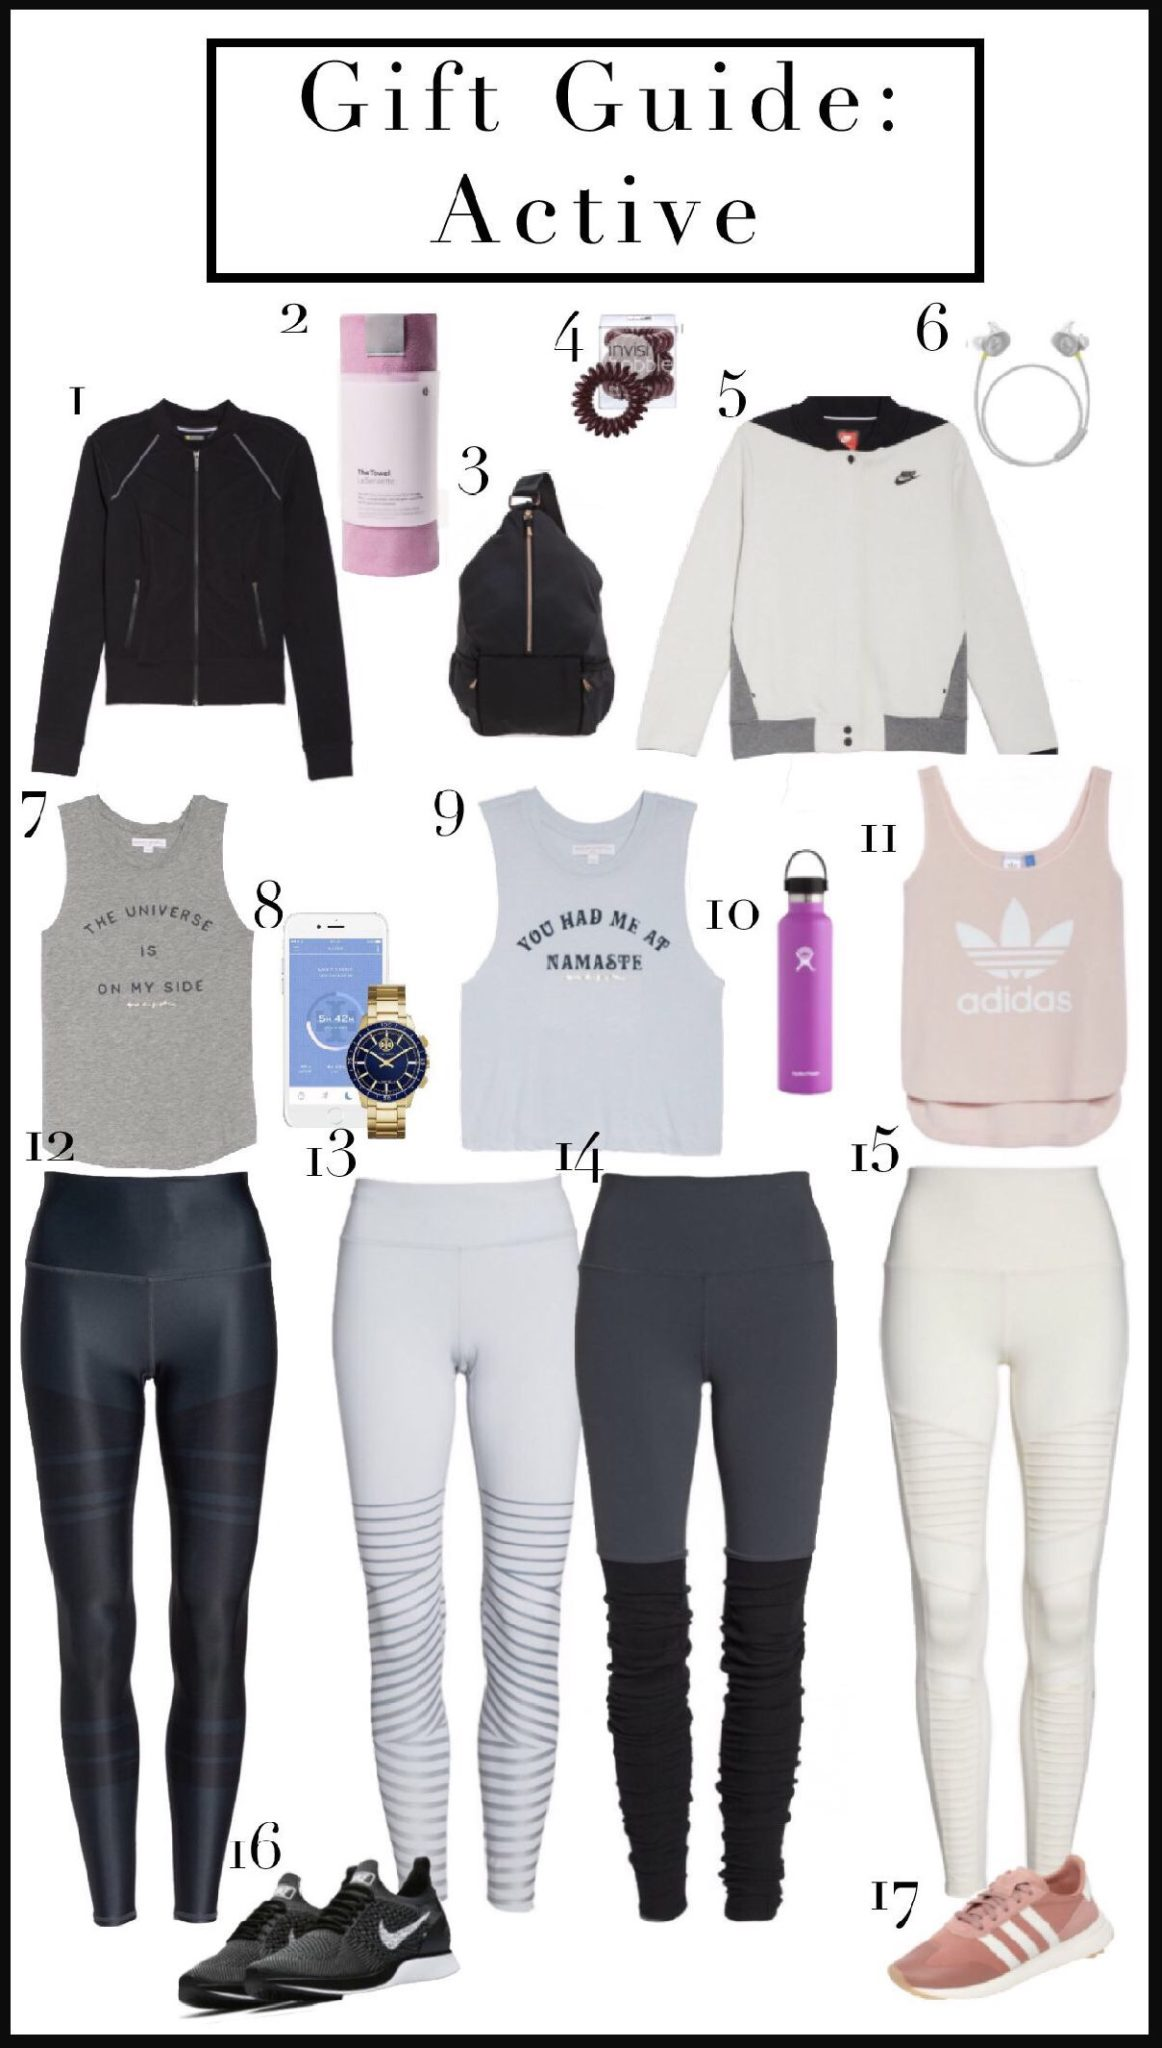 Gift Guide: Women's Active